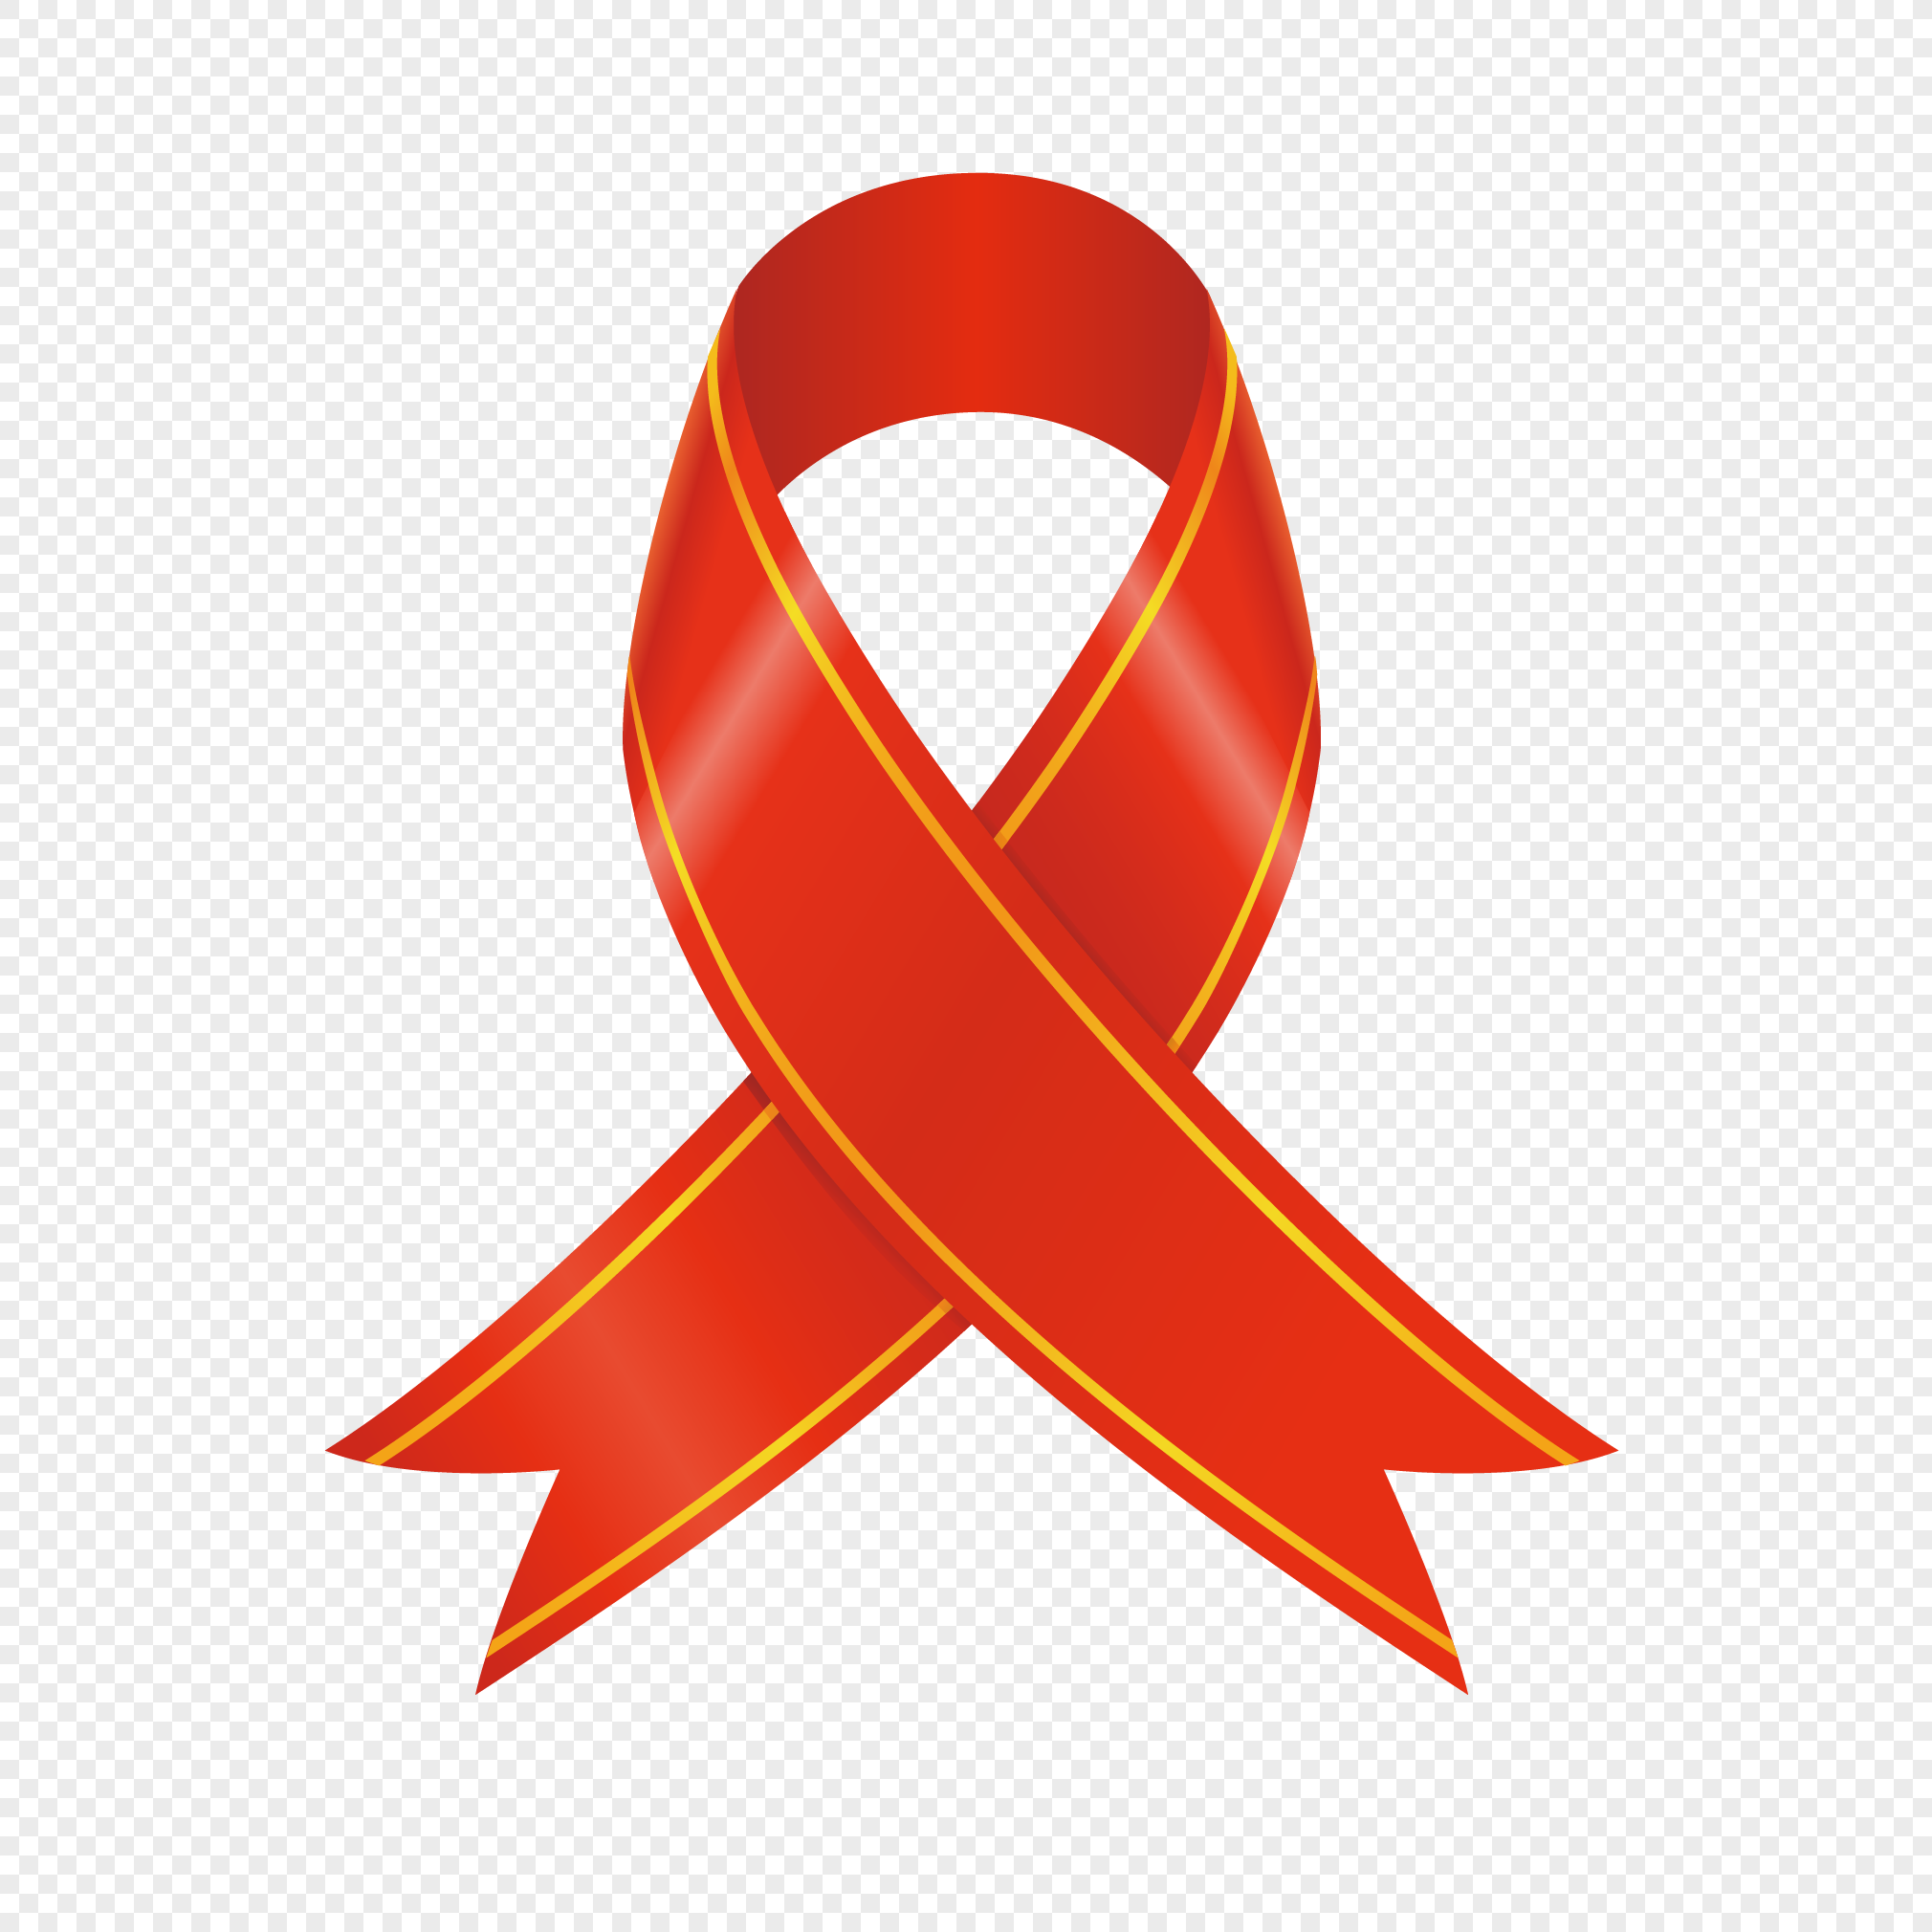 2020x2020 Gift Red Ribbon Ribbon Vector Material Png Image Picture Free